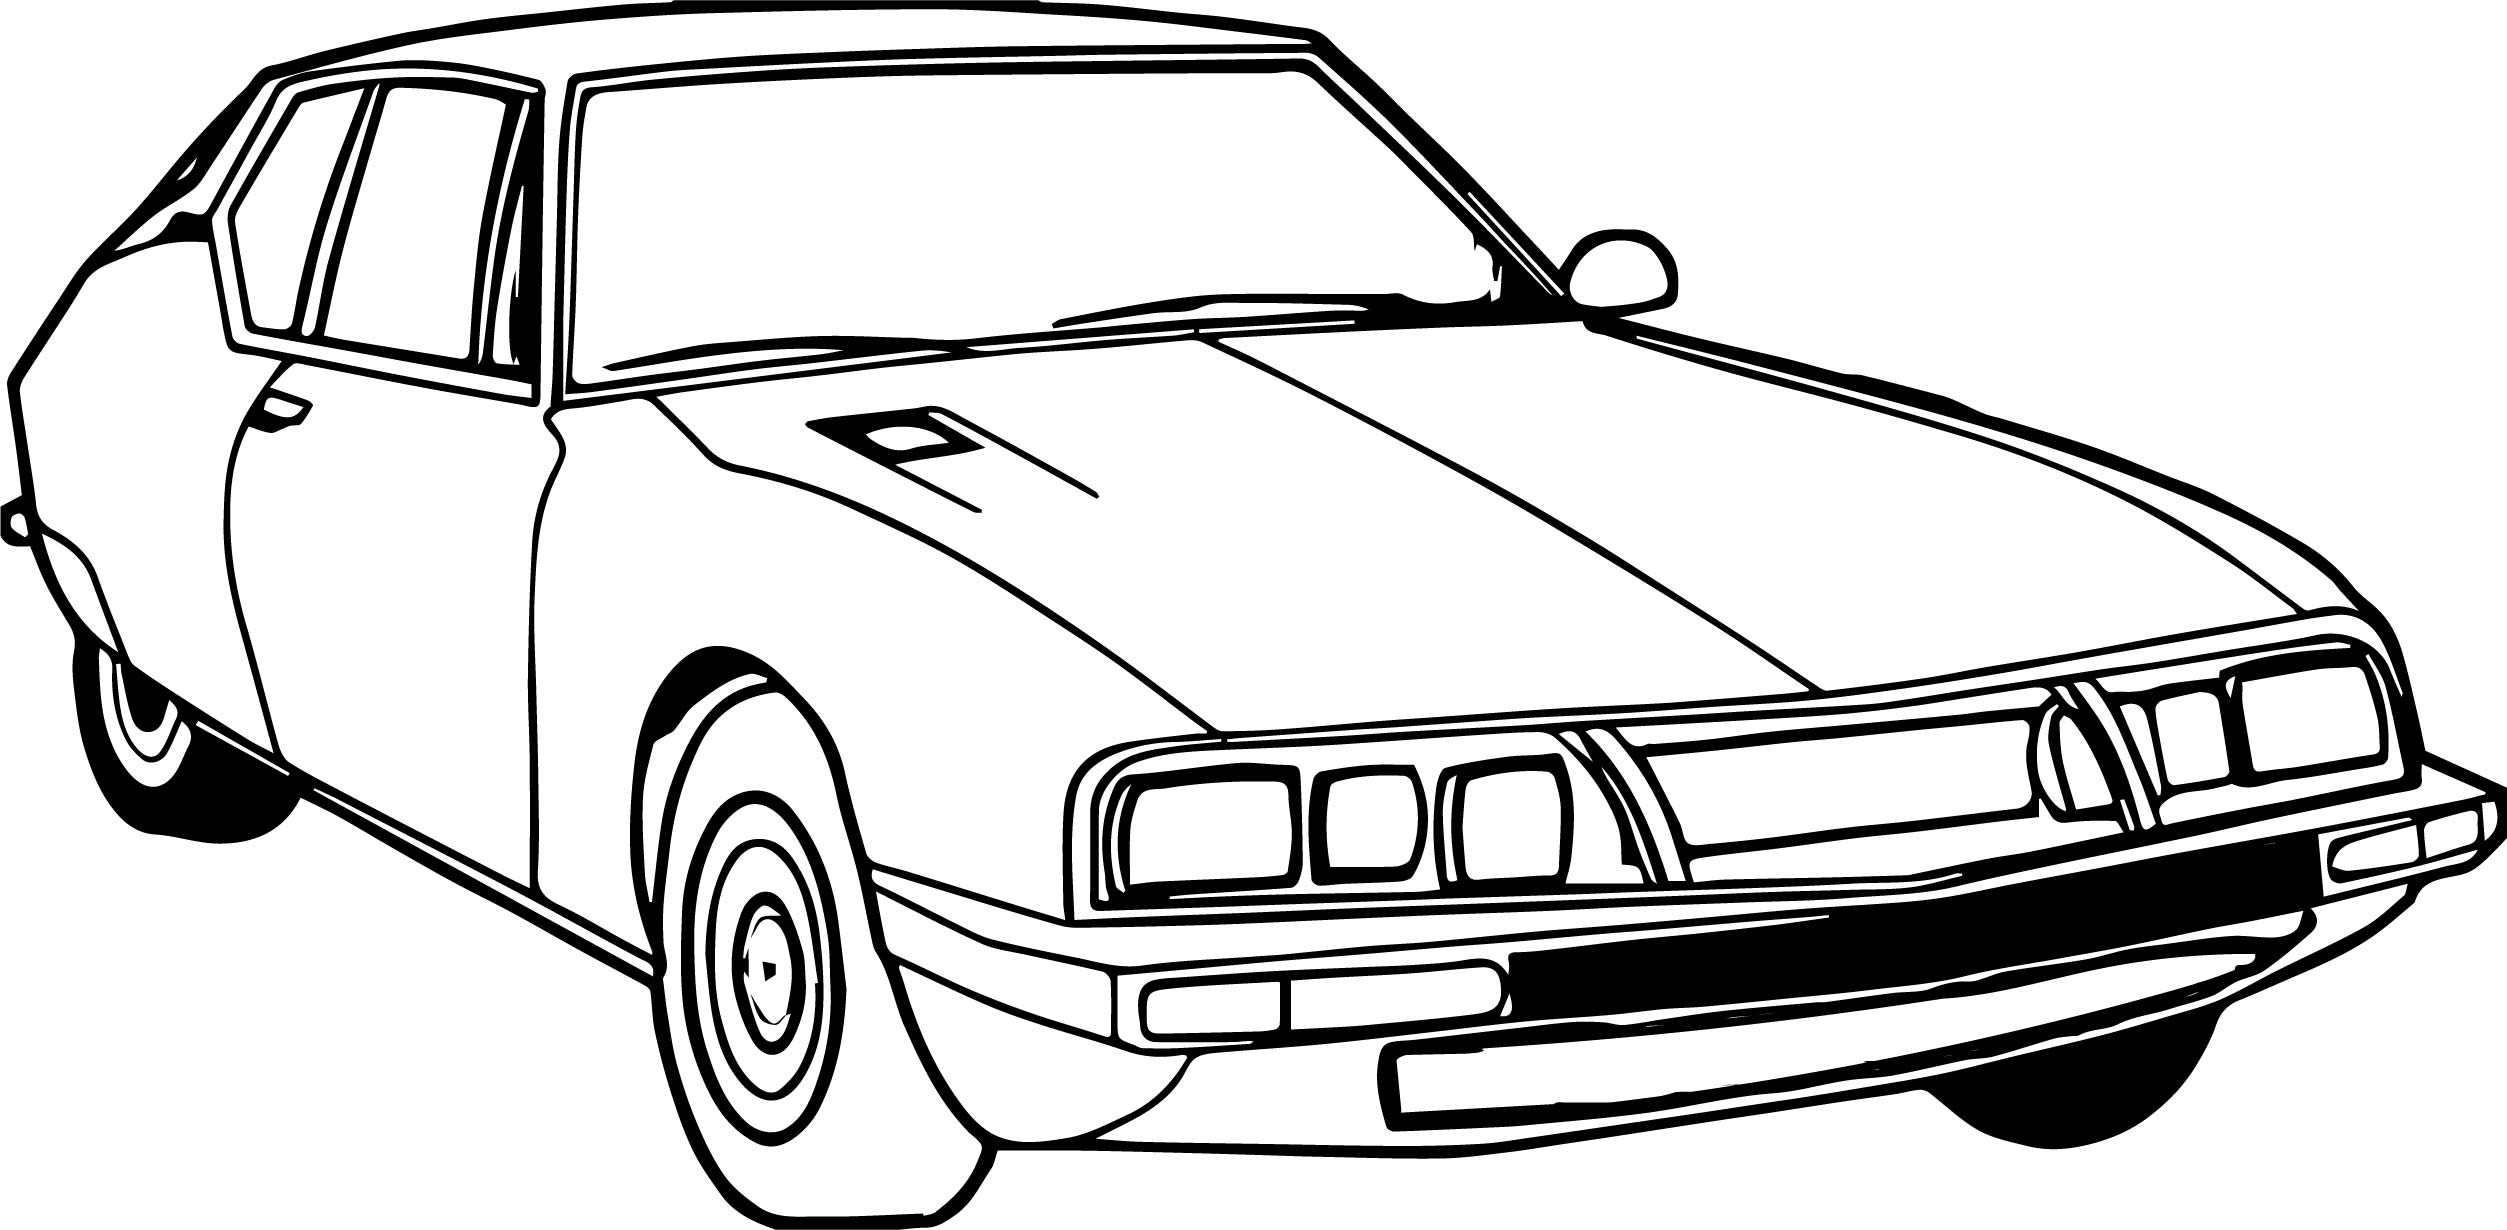 Vintage coloring pages 1950s ~ 1950 Vintage Car Coloring Coloring Coloring Pages